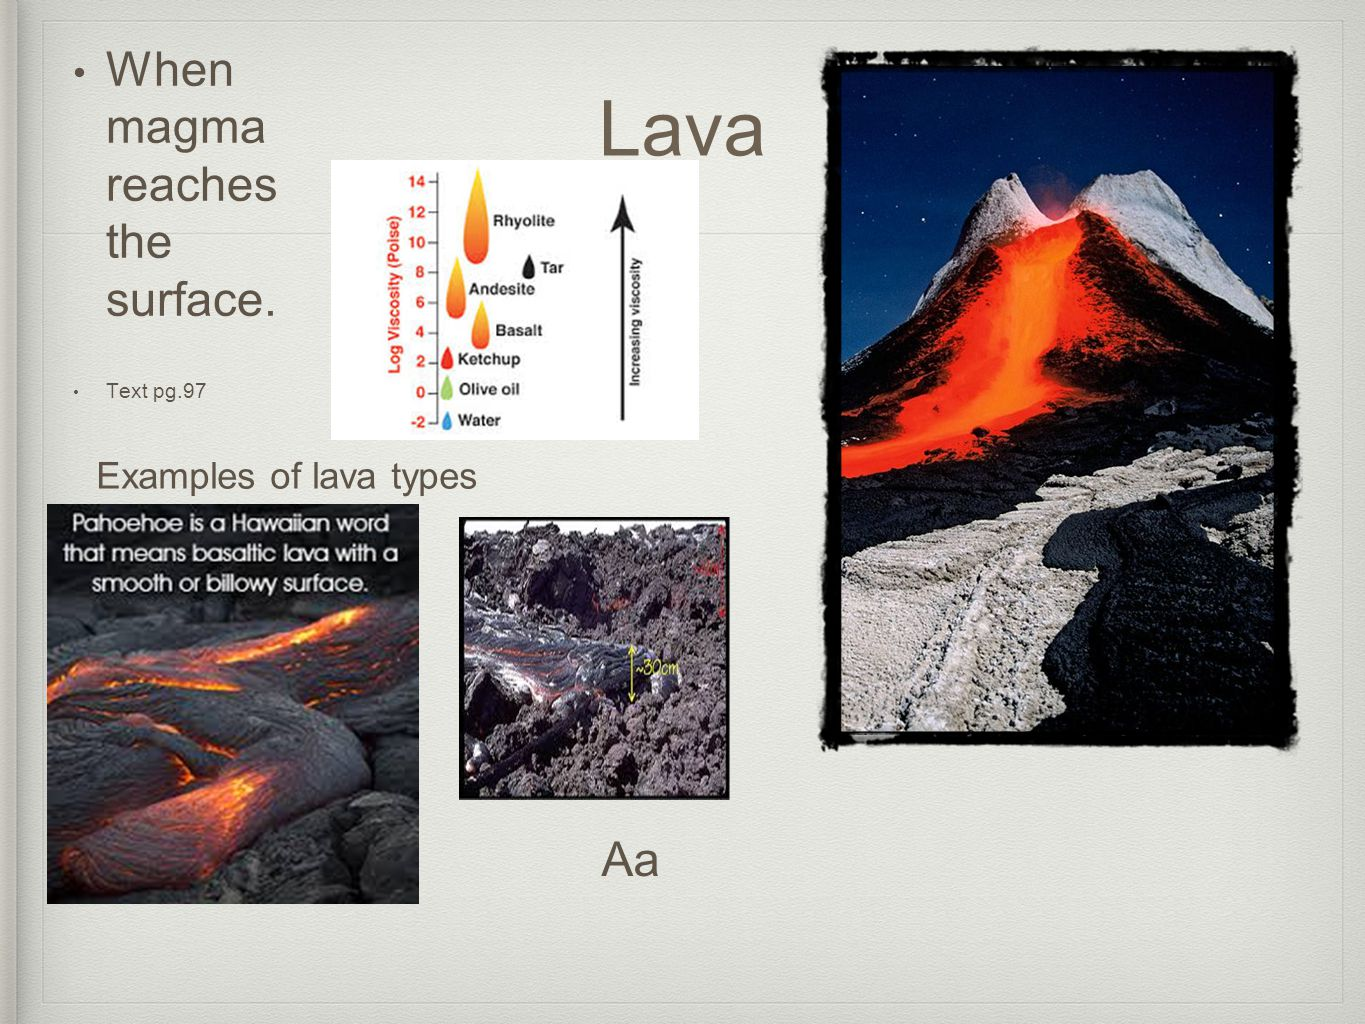 Lava When magma reaches the surface. Text pg.97 Examples of lava types Aa